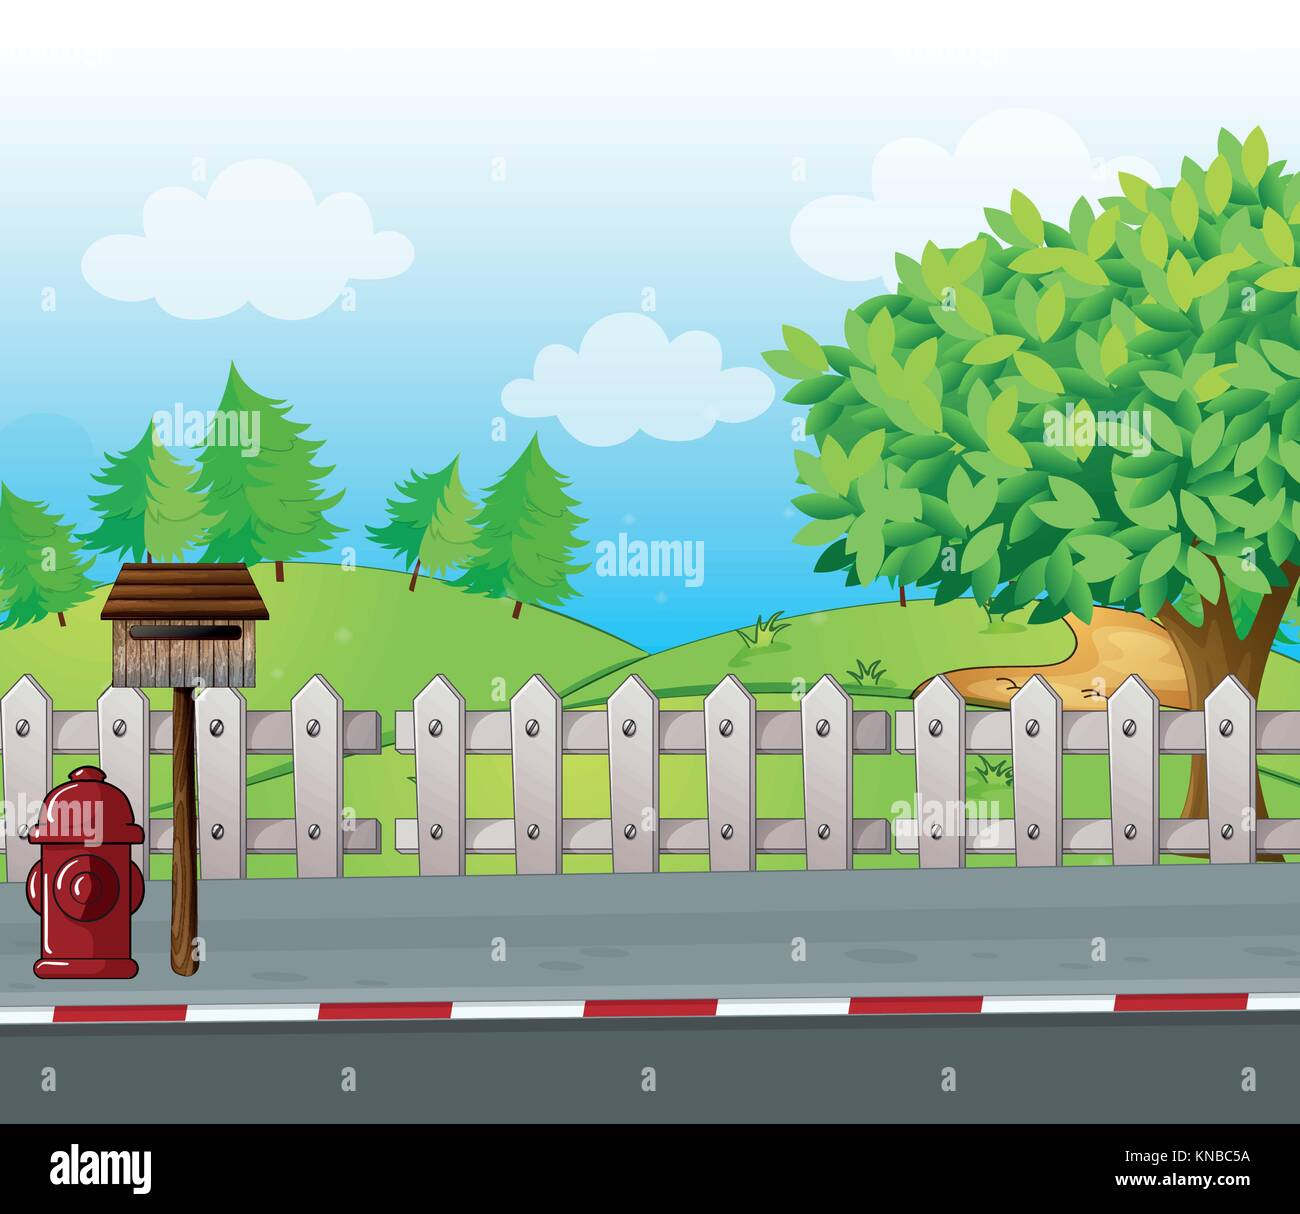 Illustration of a letter box and a fire hydrant on a roadside - Stock Vector